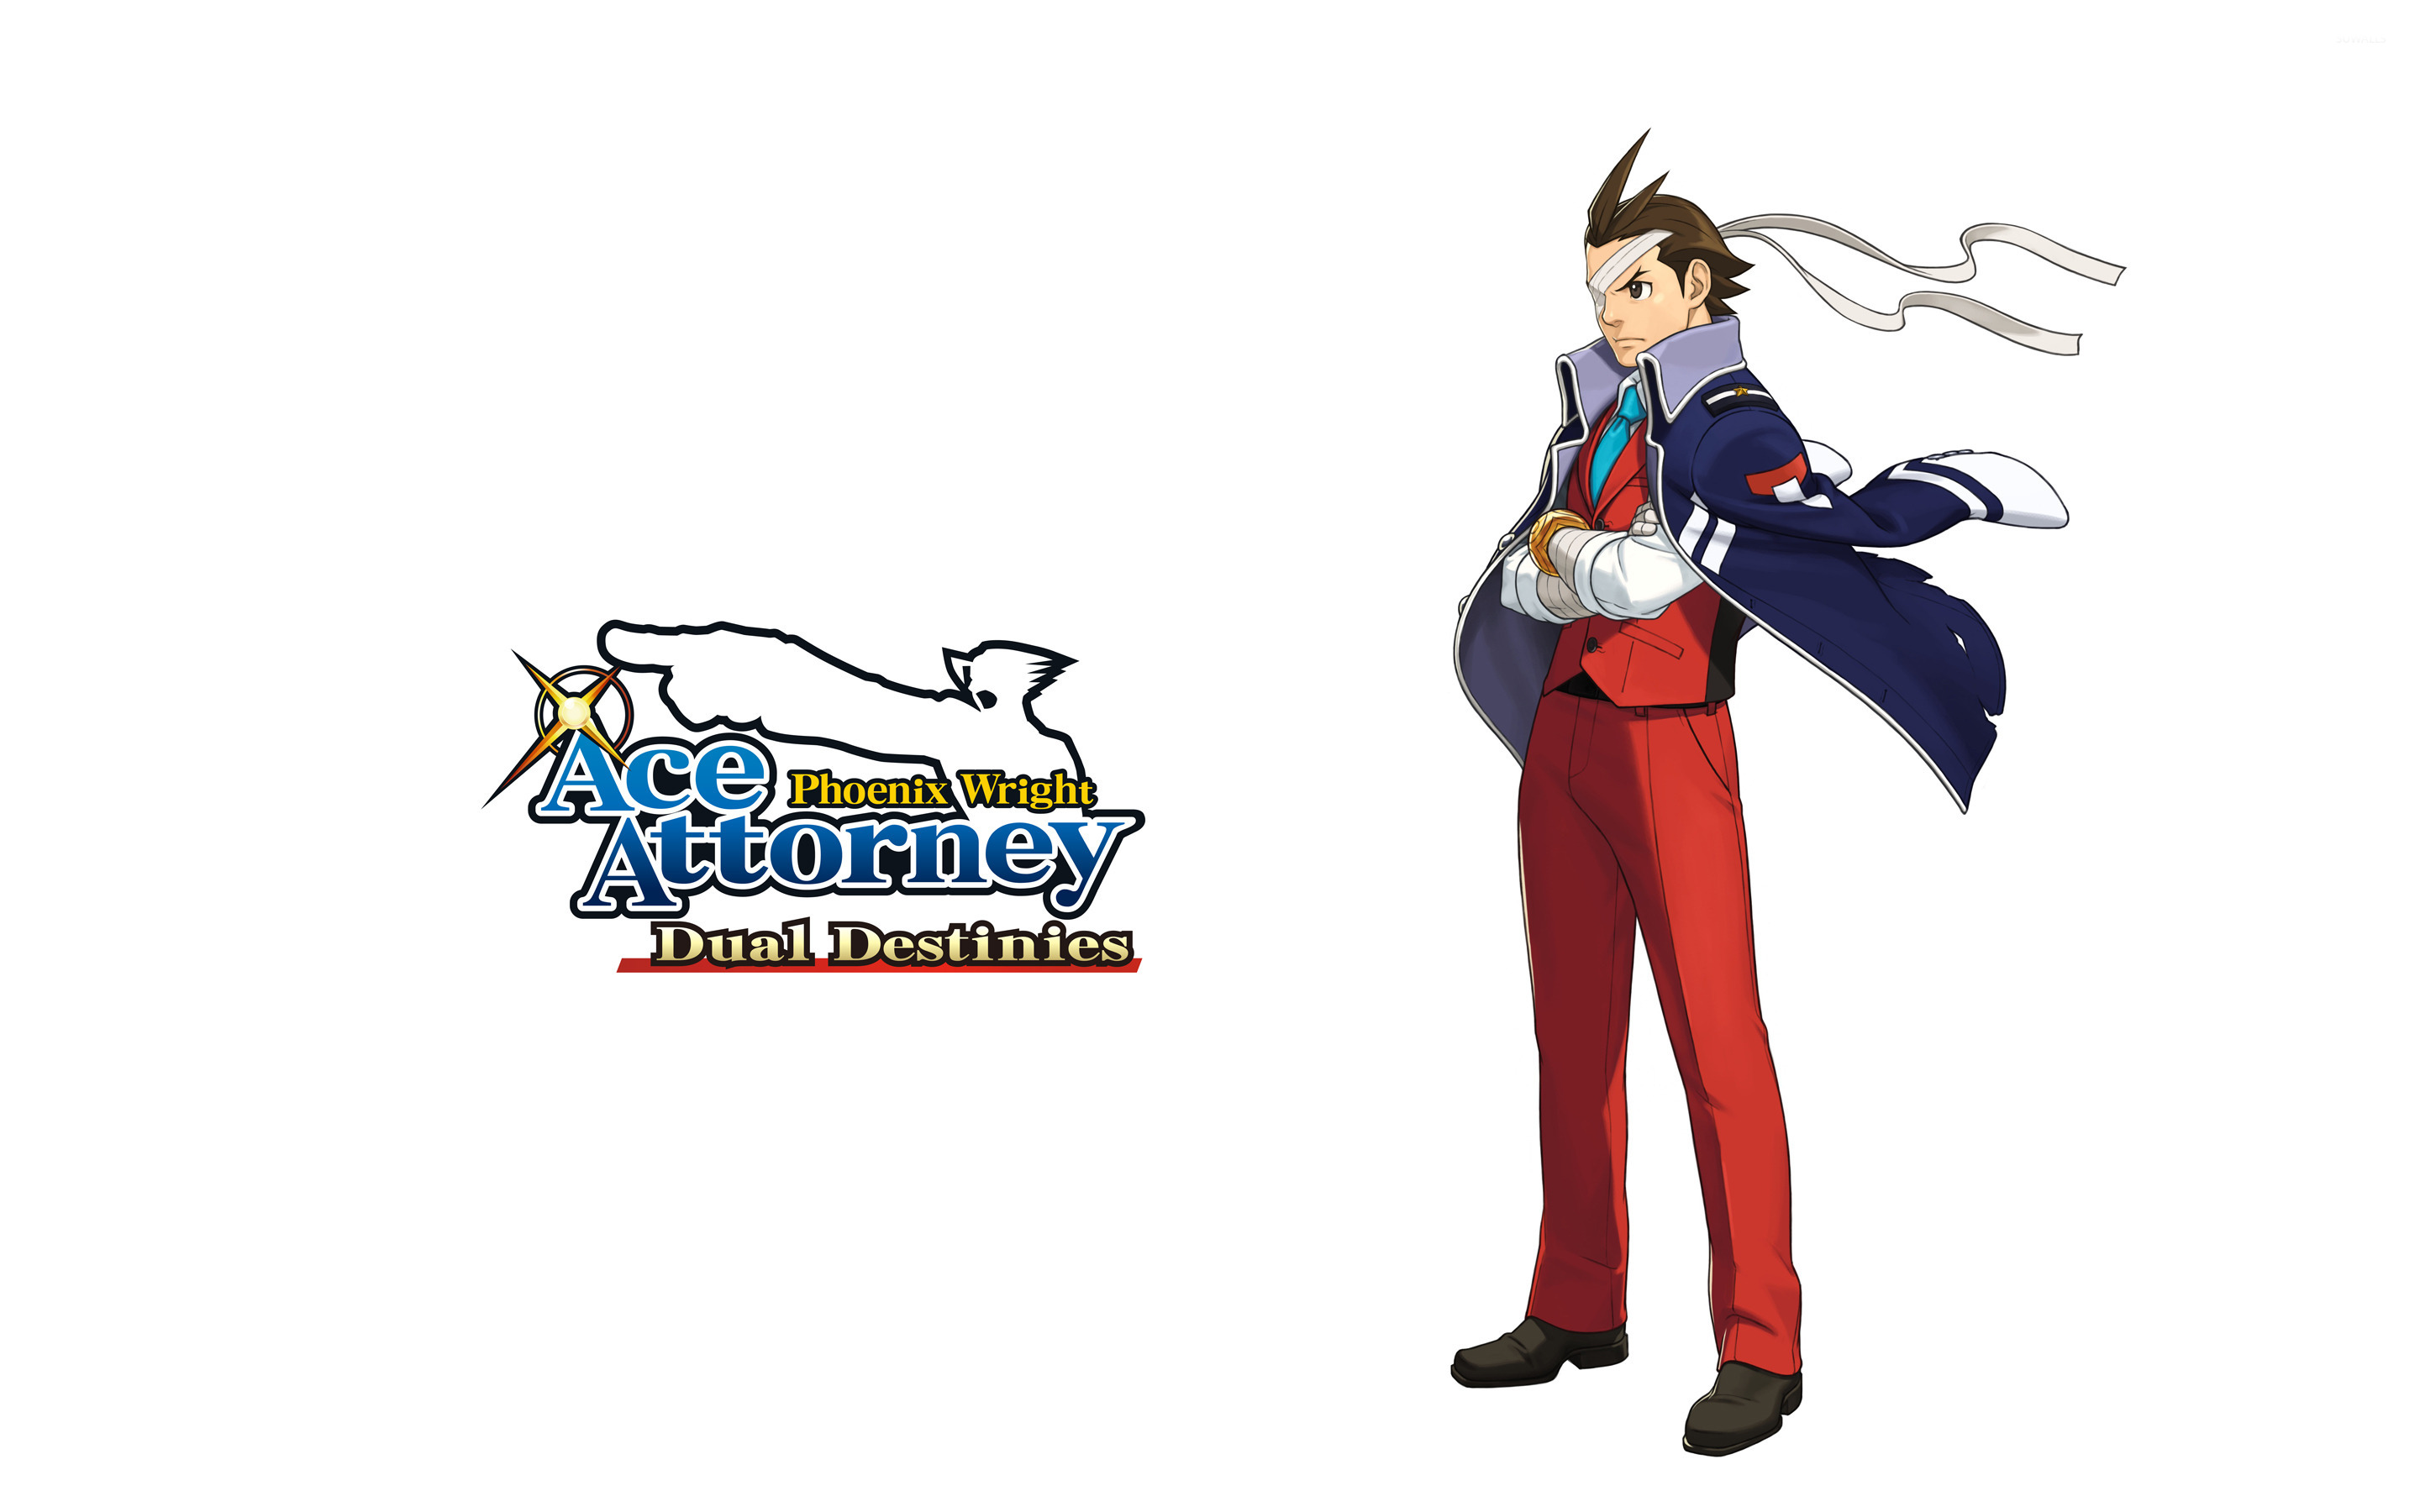 Phoenix Wright Ace Attorney Dual Destinies 3 Wallpaper Game